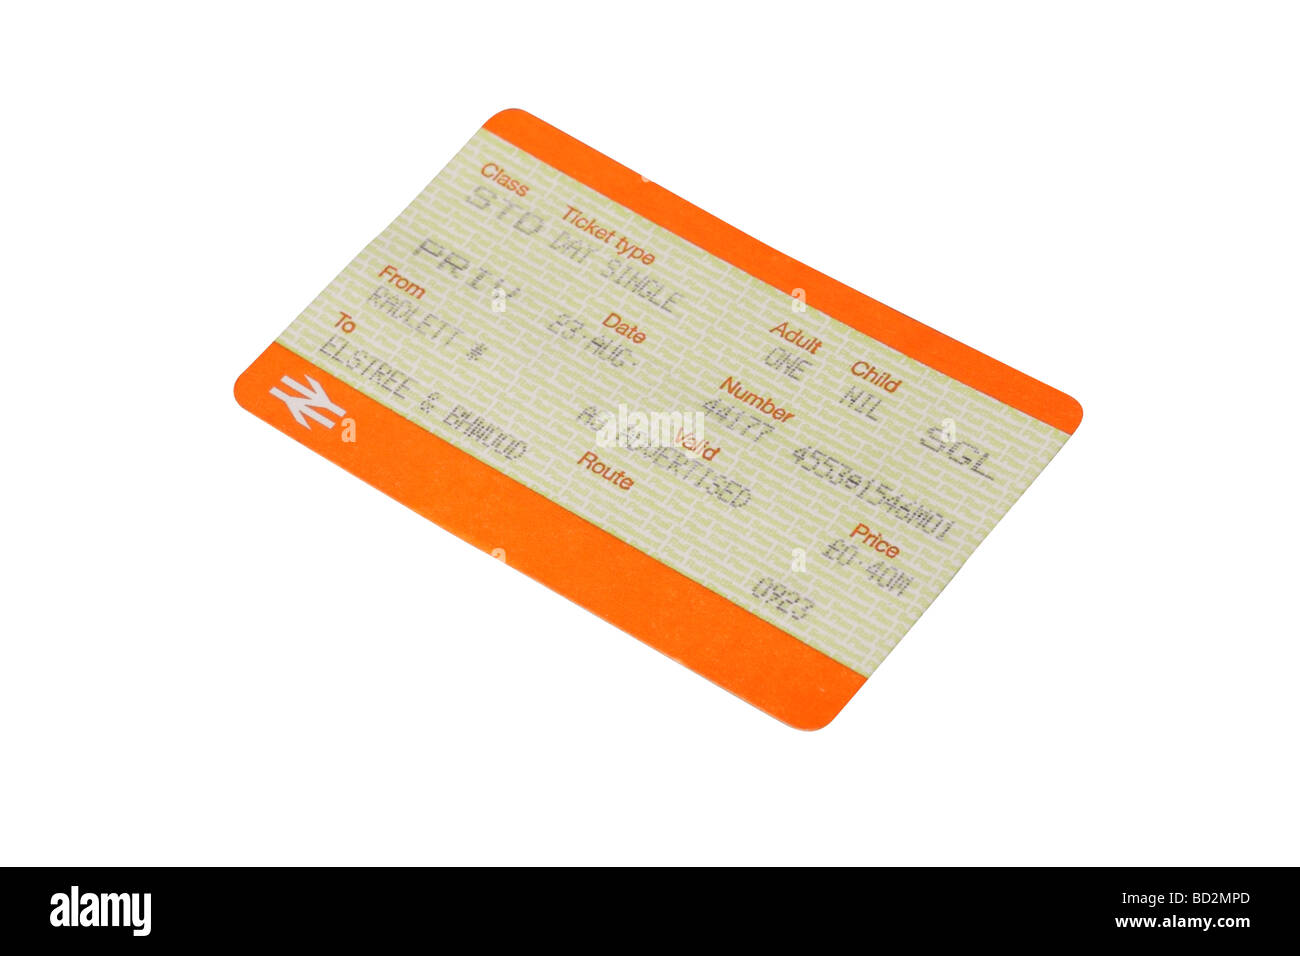 British rail train ticket - Stock Image